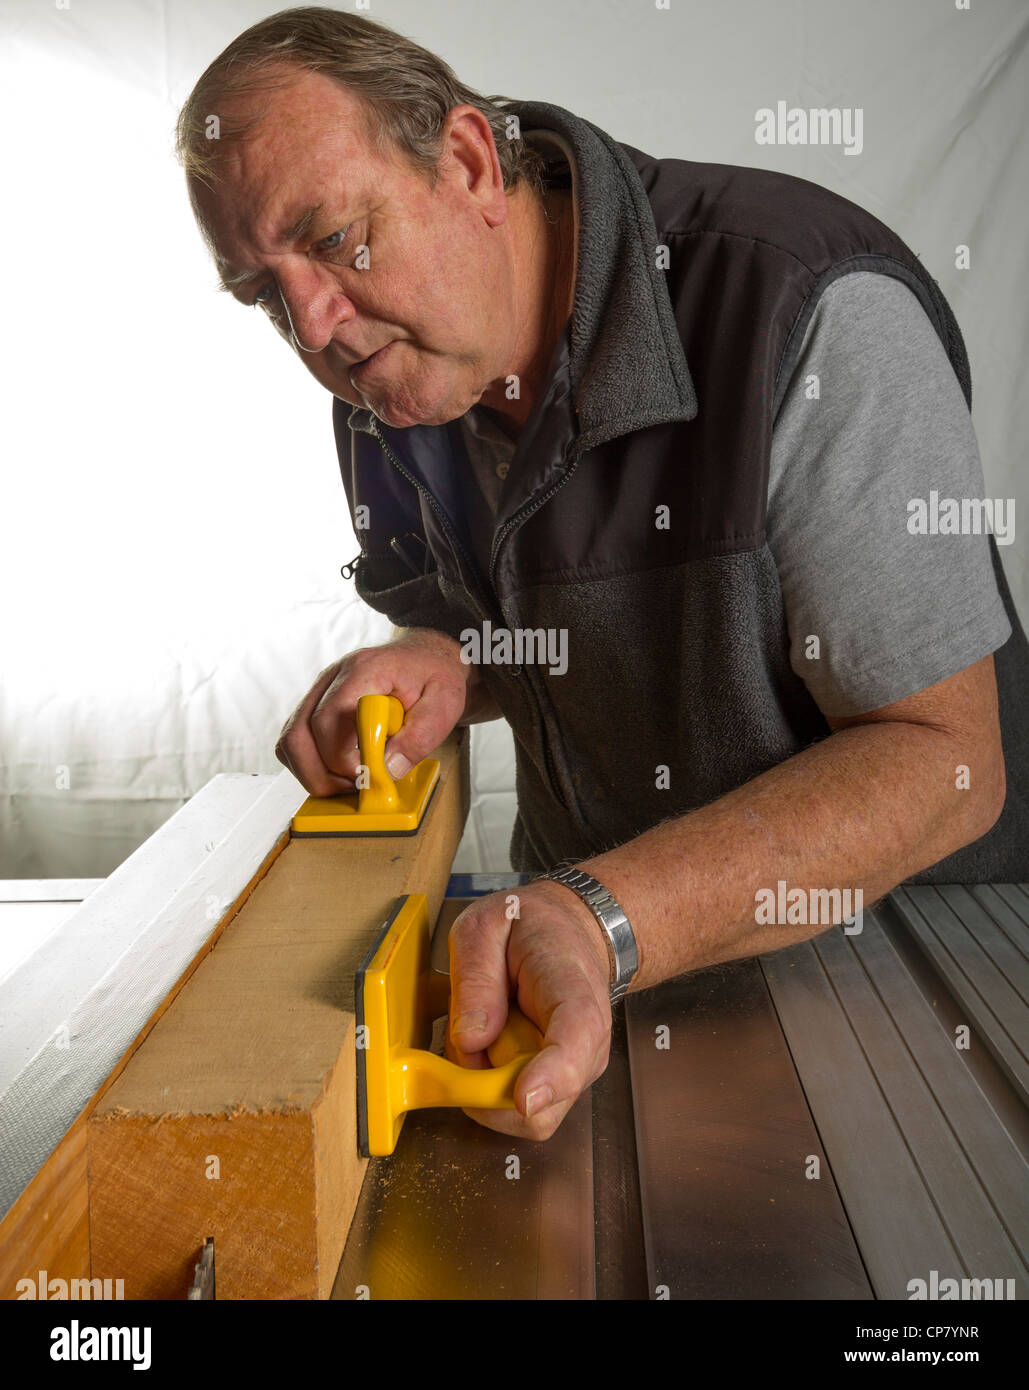 Senior male woodworker guiding a piece of wood through a saw bench machine in a workshop. - Stock Image